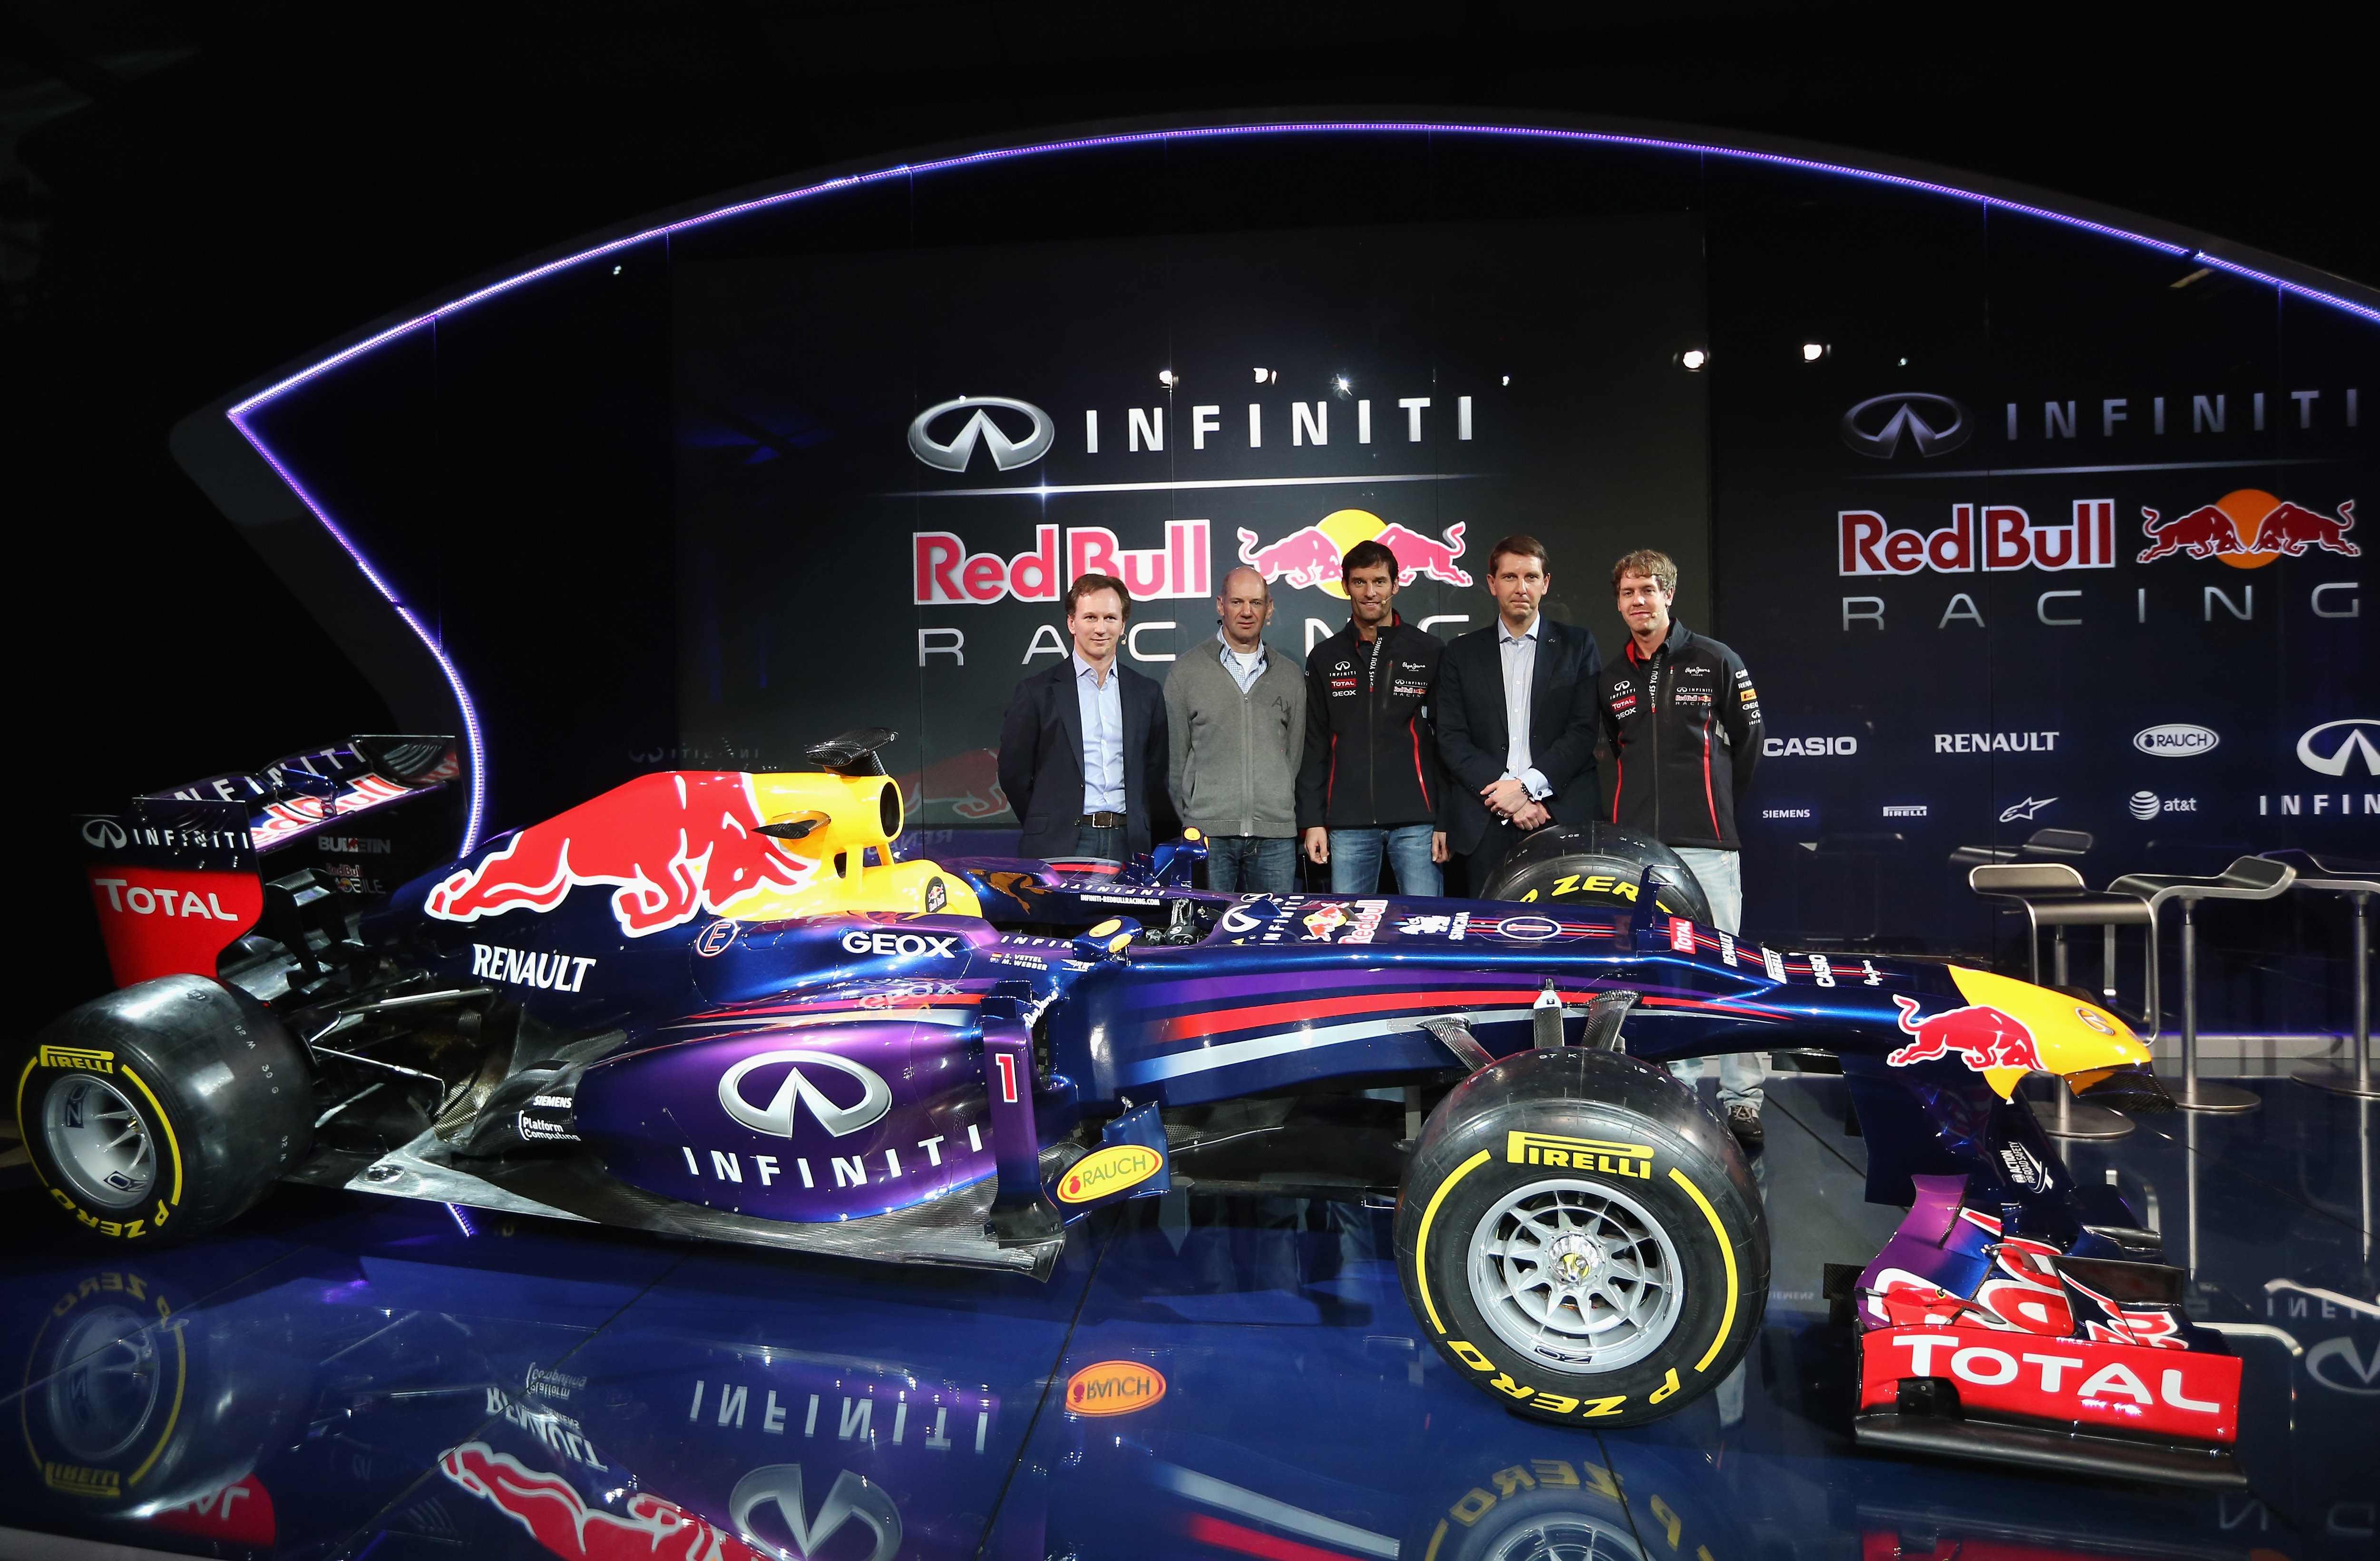 eveluate red bull s product development process Product development process by enabling  infiniti red bull racing's uk headquarters,  our world class solutions for world class racing.